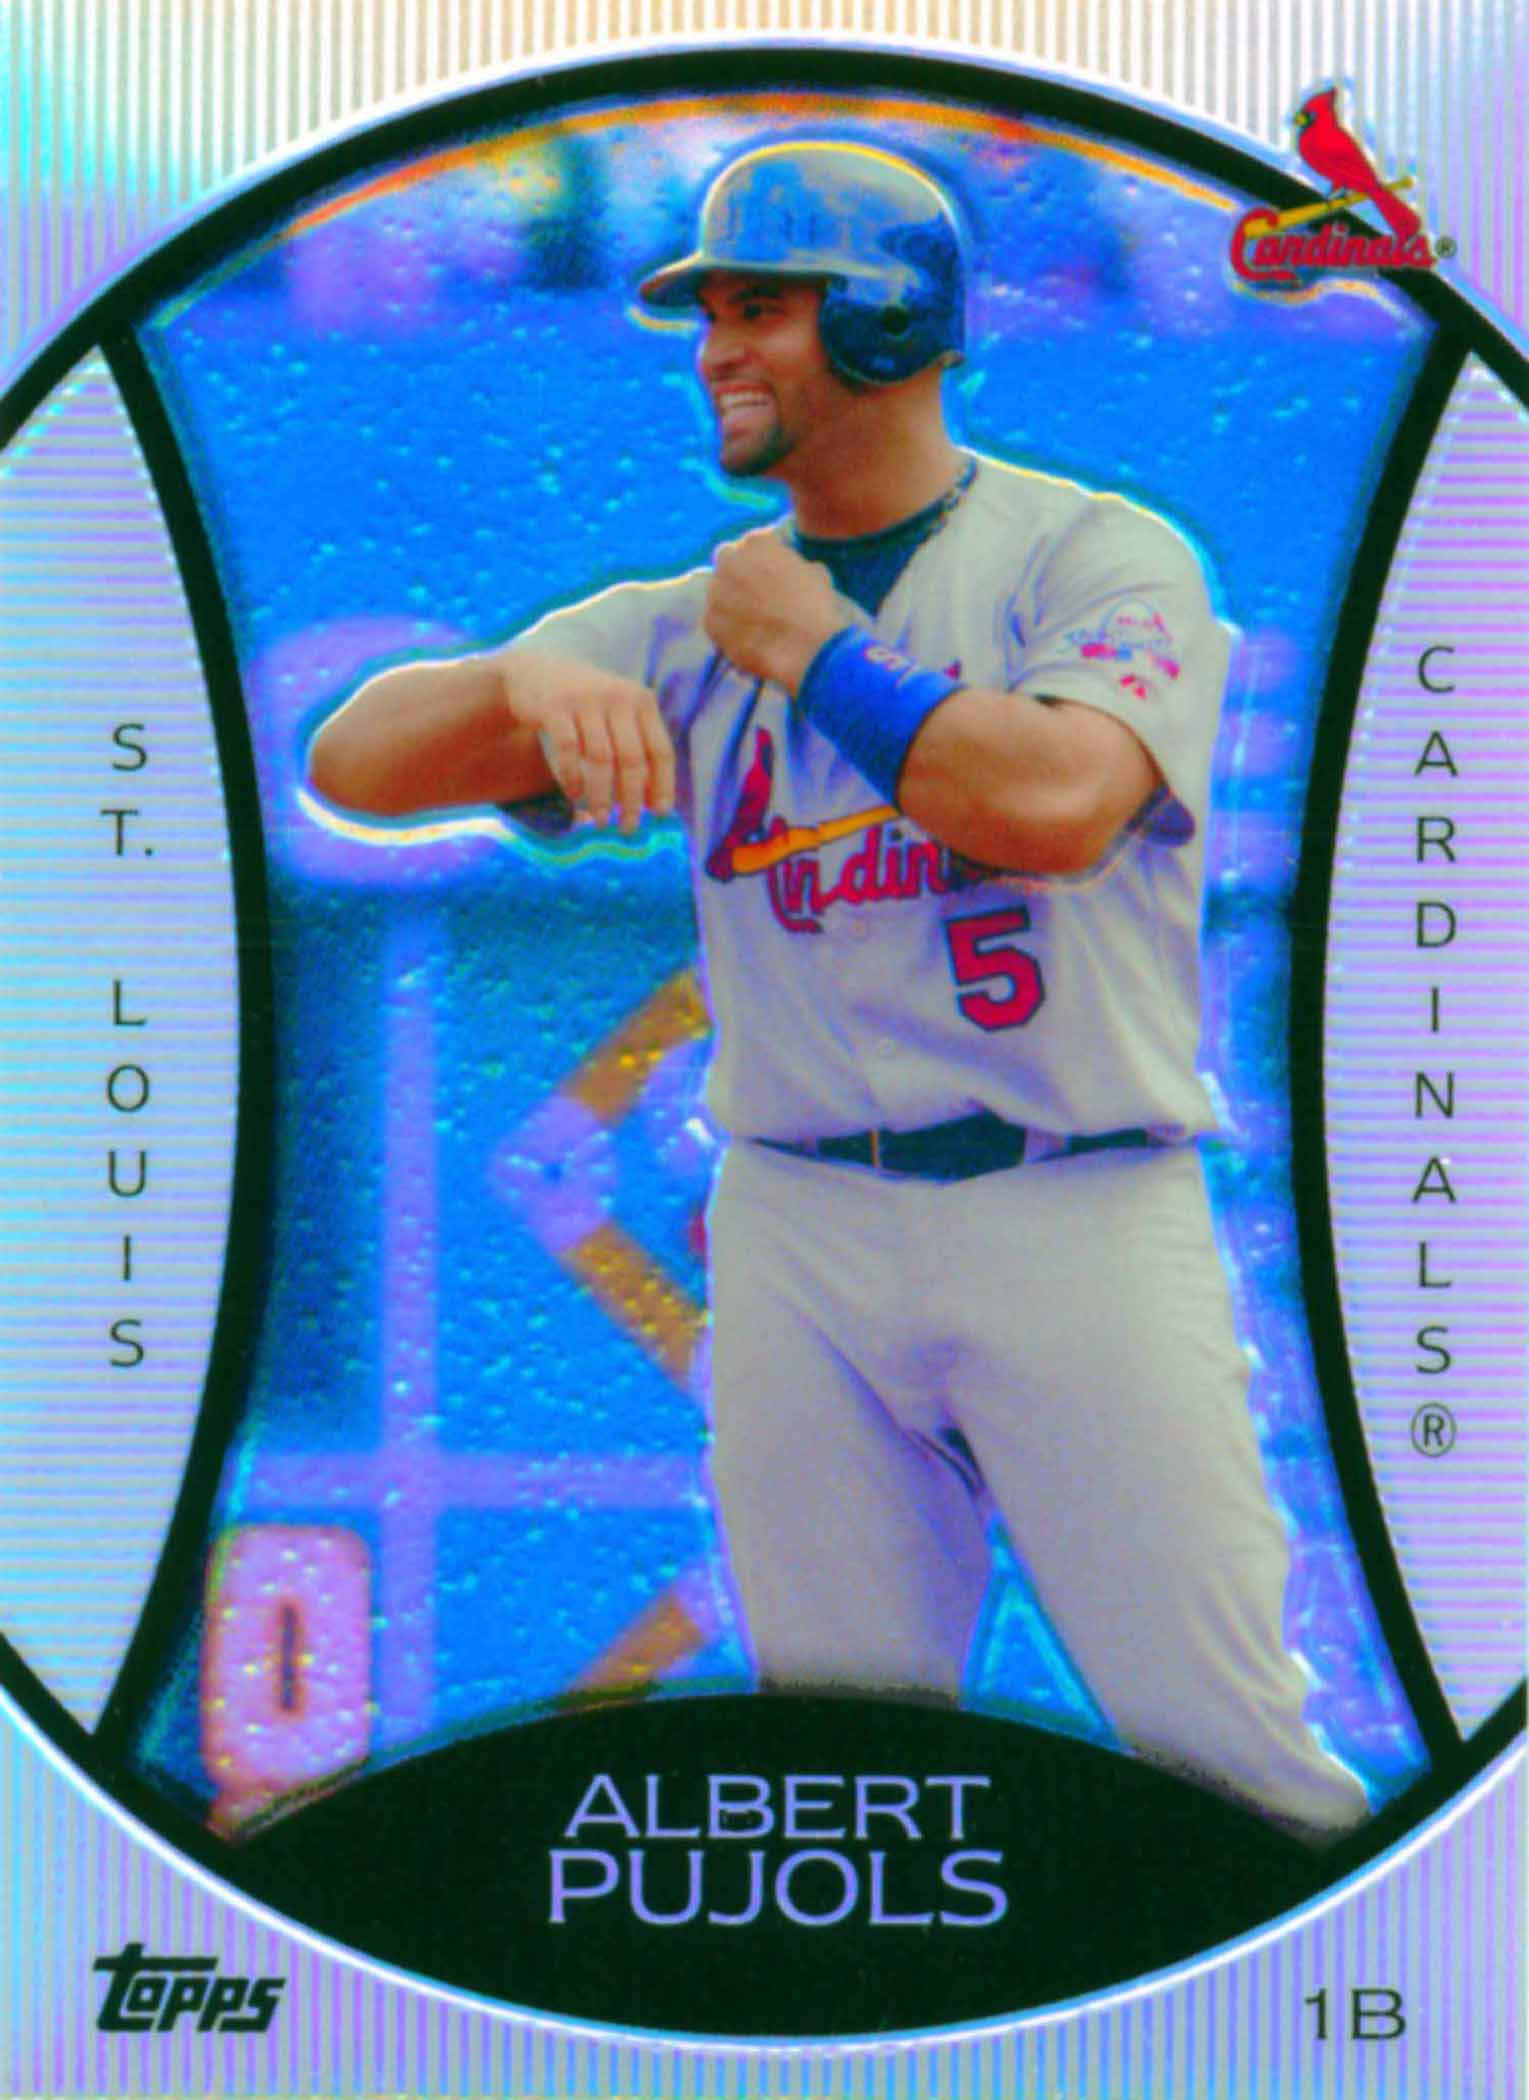 2013 Topps Chrome Black Refractors